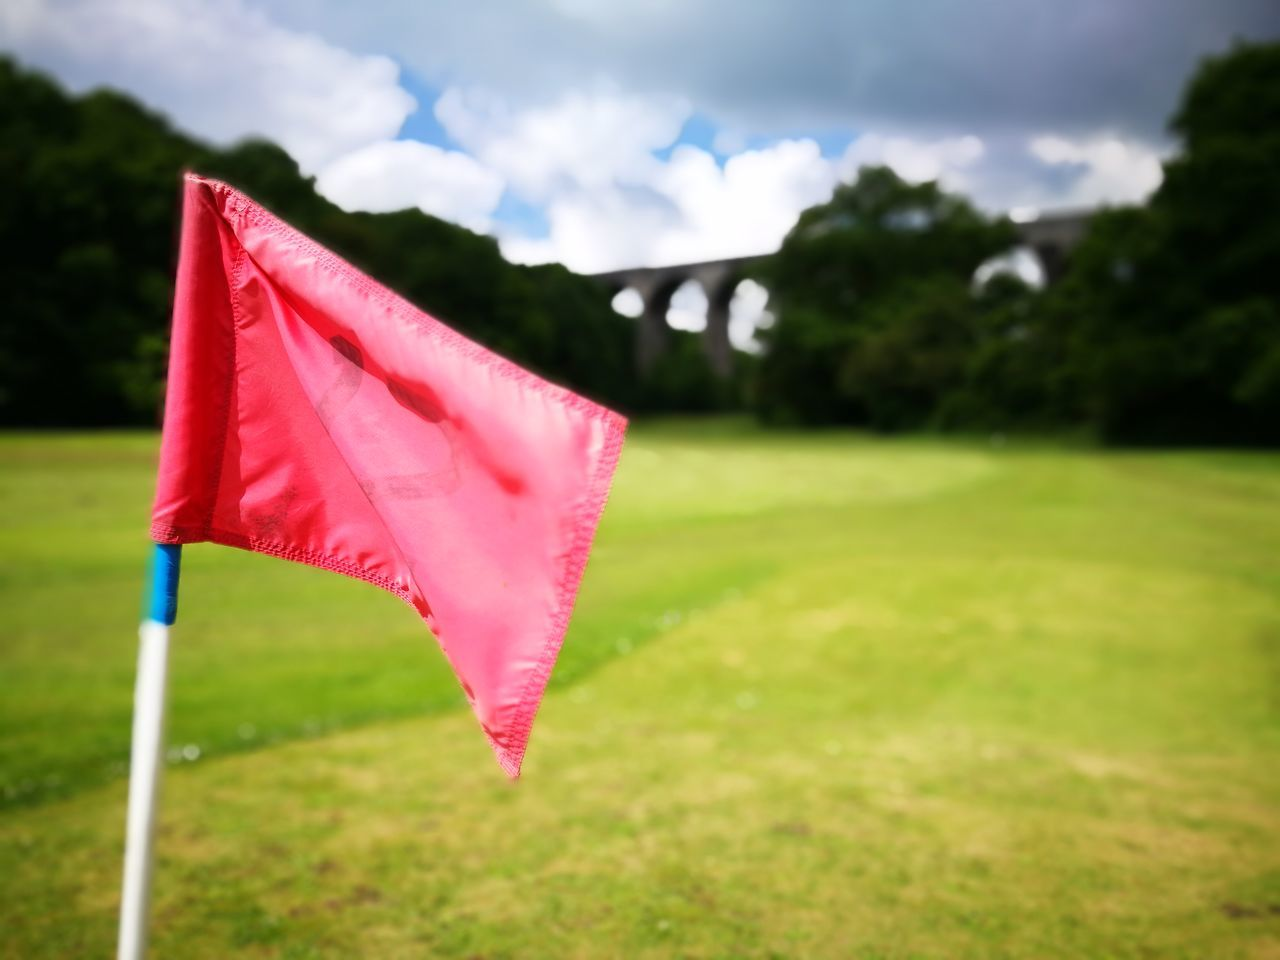 Porthkery golf course and country park Wales UK Golf Course Porthkerry First Eyeem Photo